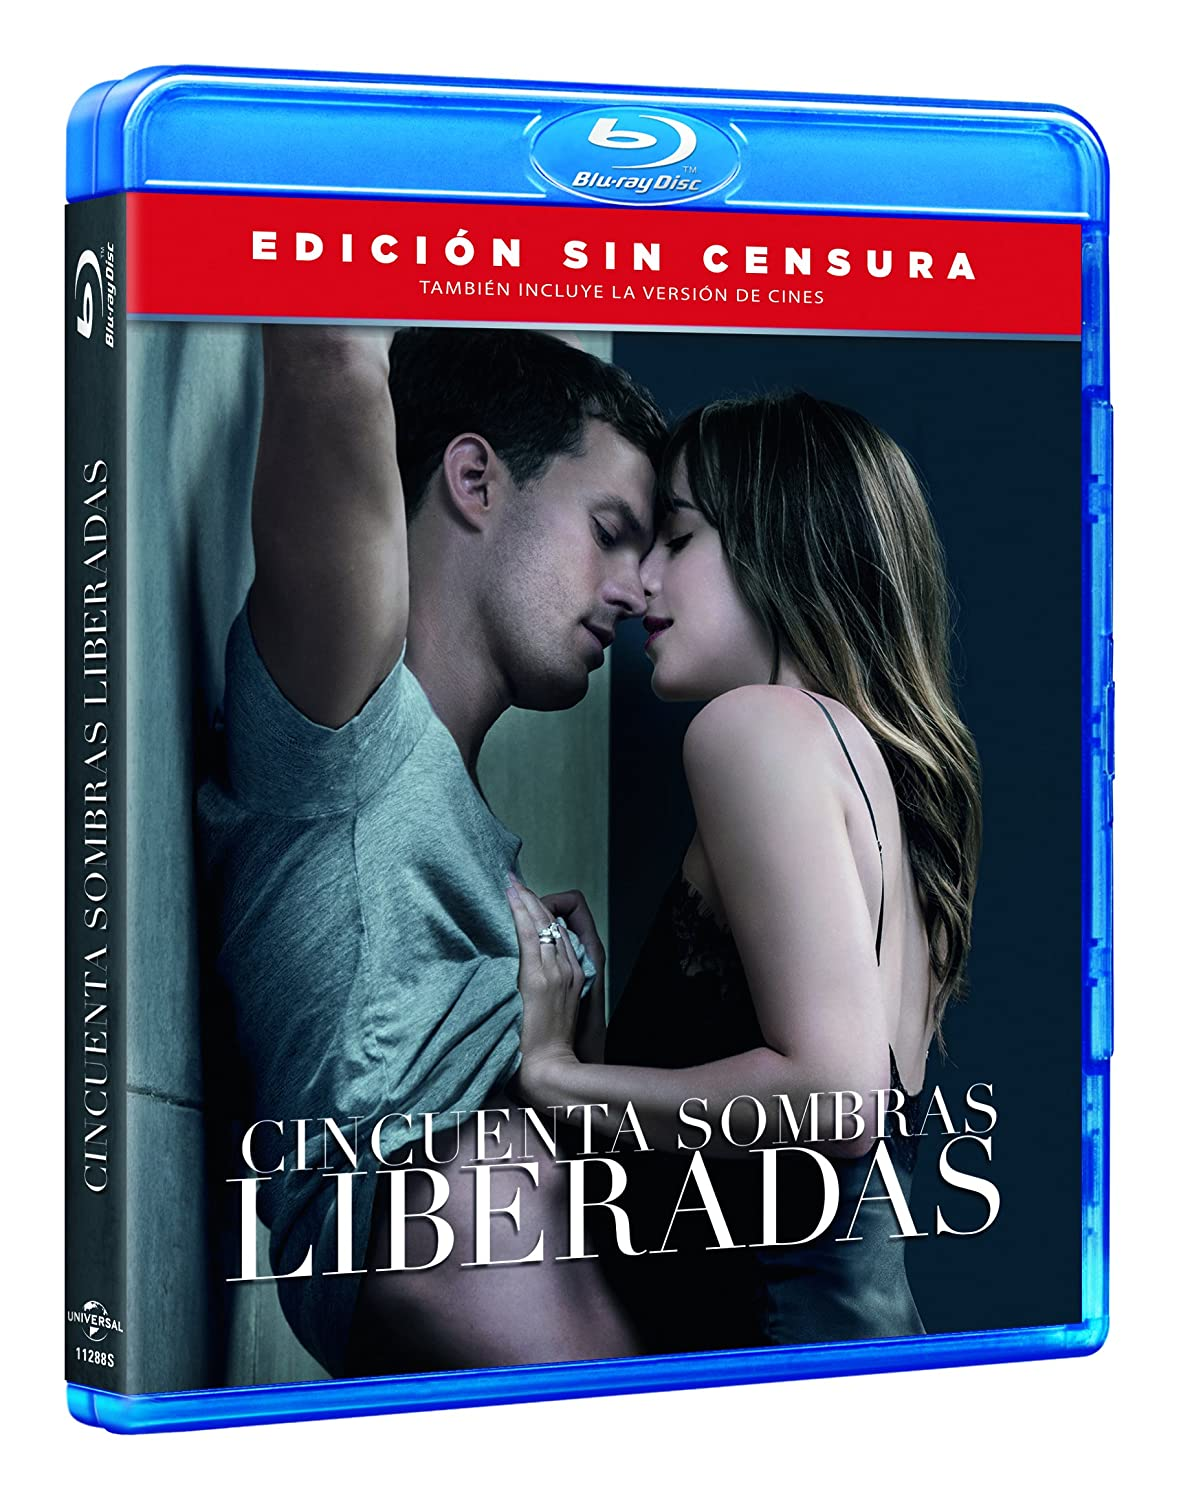 Cincuenta Sombras Liberadas [Blu-ray]: Amazon.es: Dakota Johnson ...